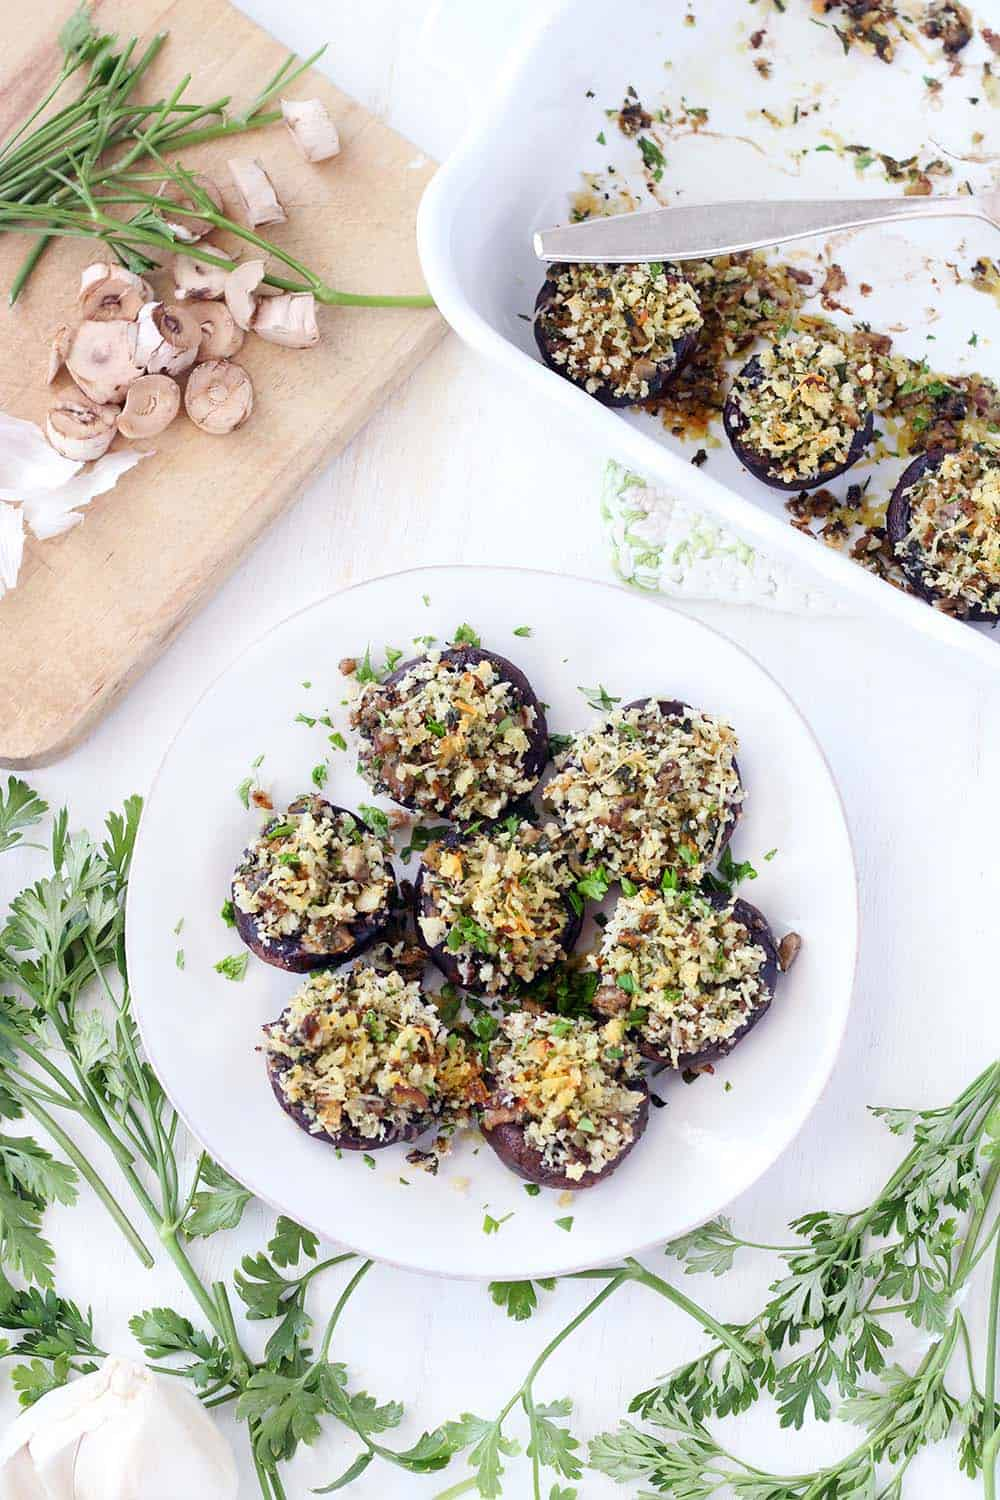 These Italian Vegetarian Stuffed Mushrooms are a great make-ahead recipe for dinner or an appetizer! They're packed with flavor from the fresh herbs, shallots, garlic, and parmesan cheese.